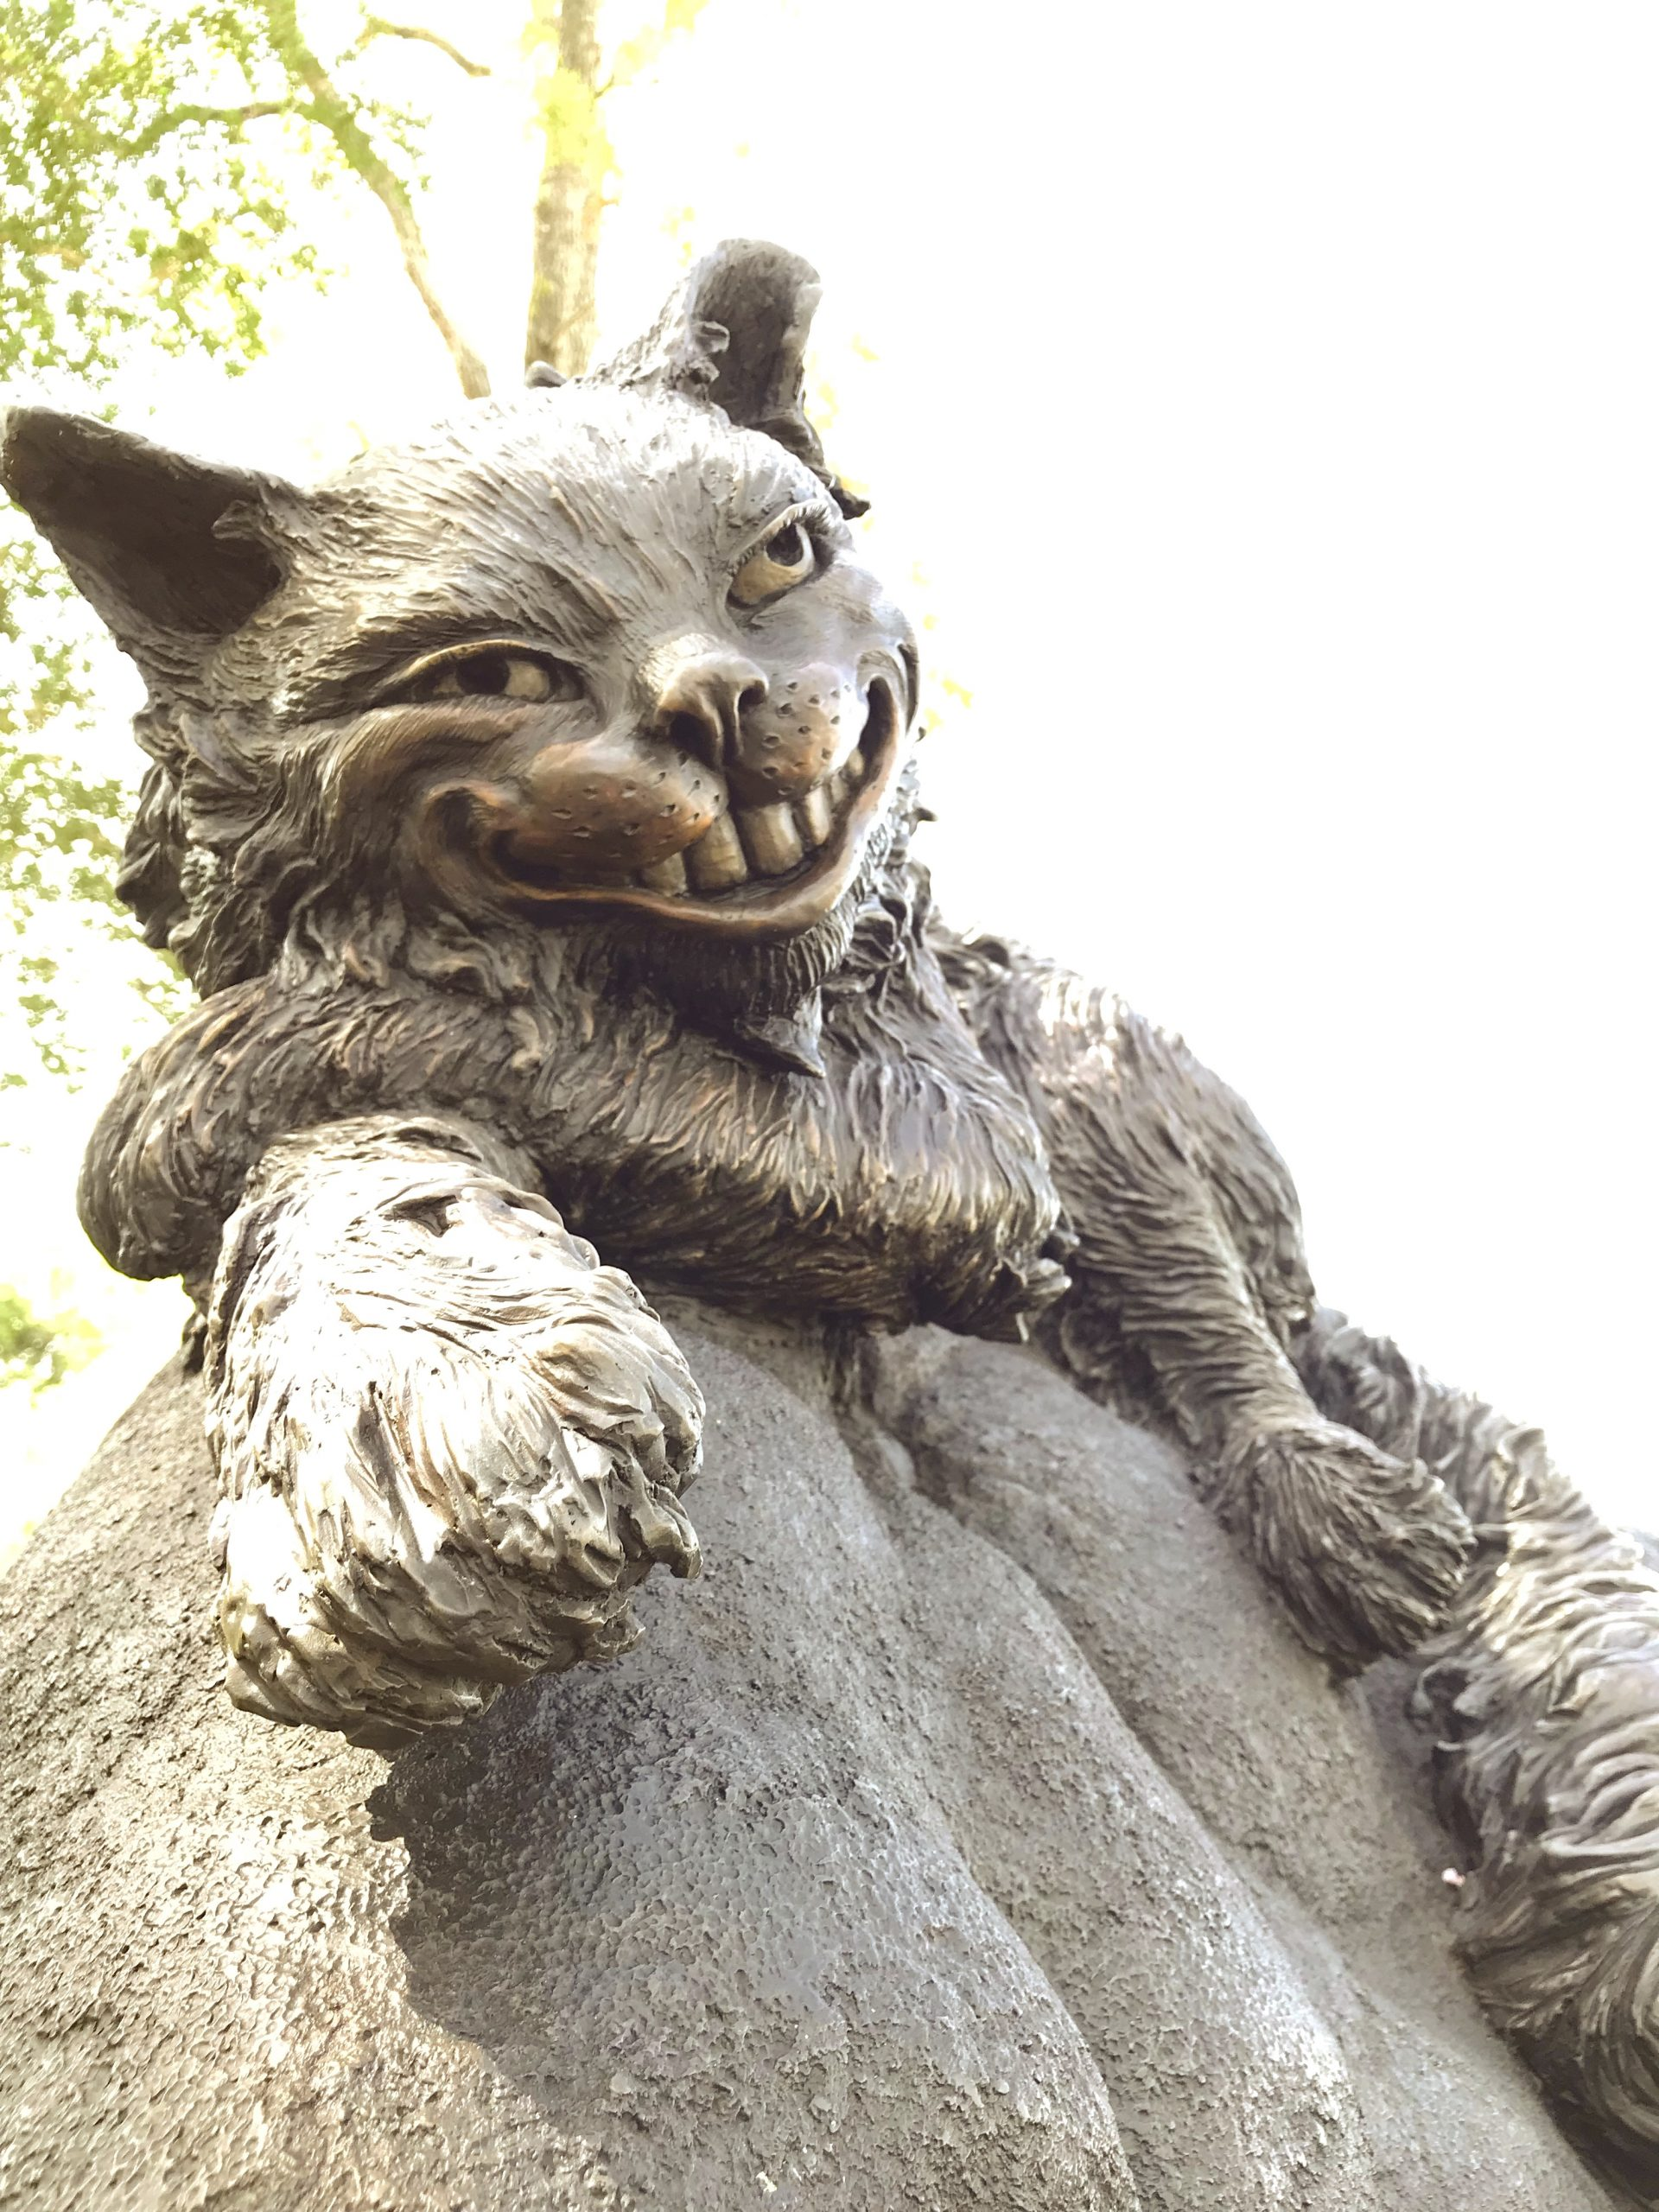 Cheshire cat in Wonderland by Houston, Texas sculptor Bridgette Mongeon